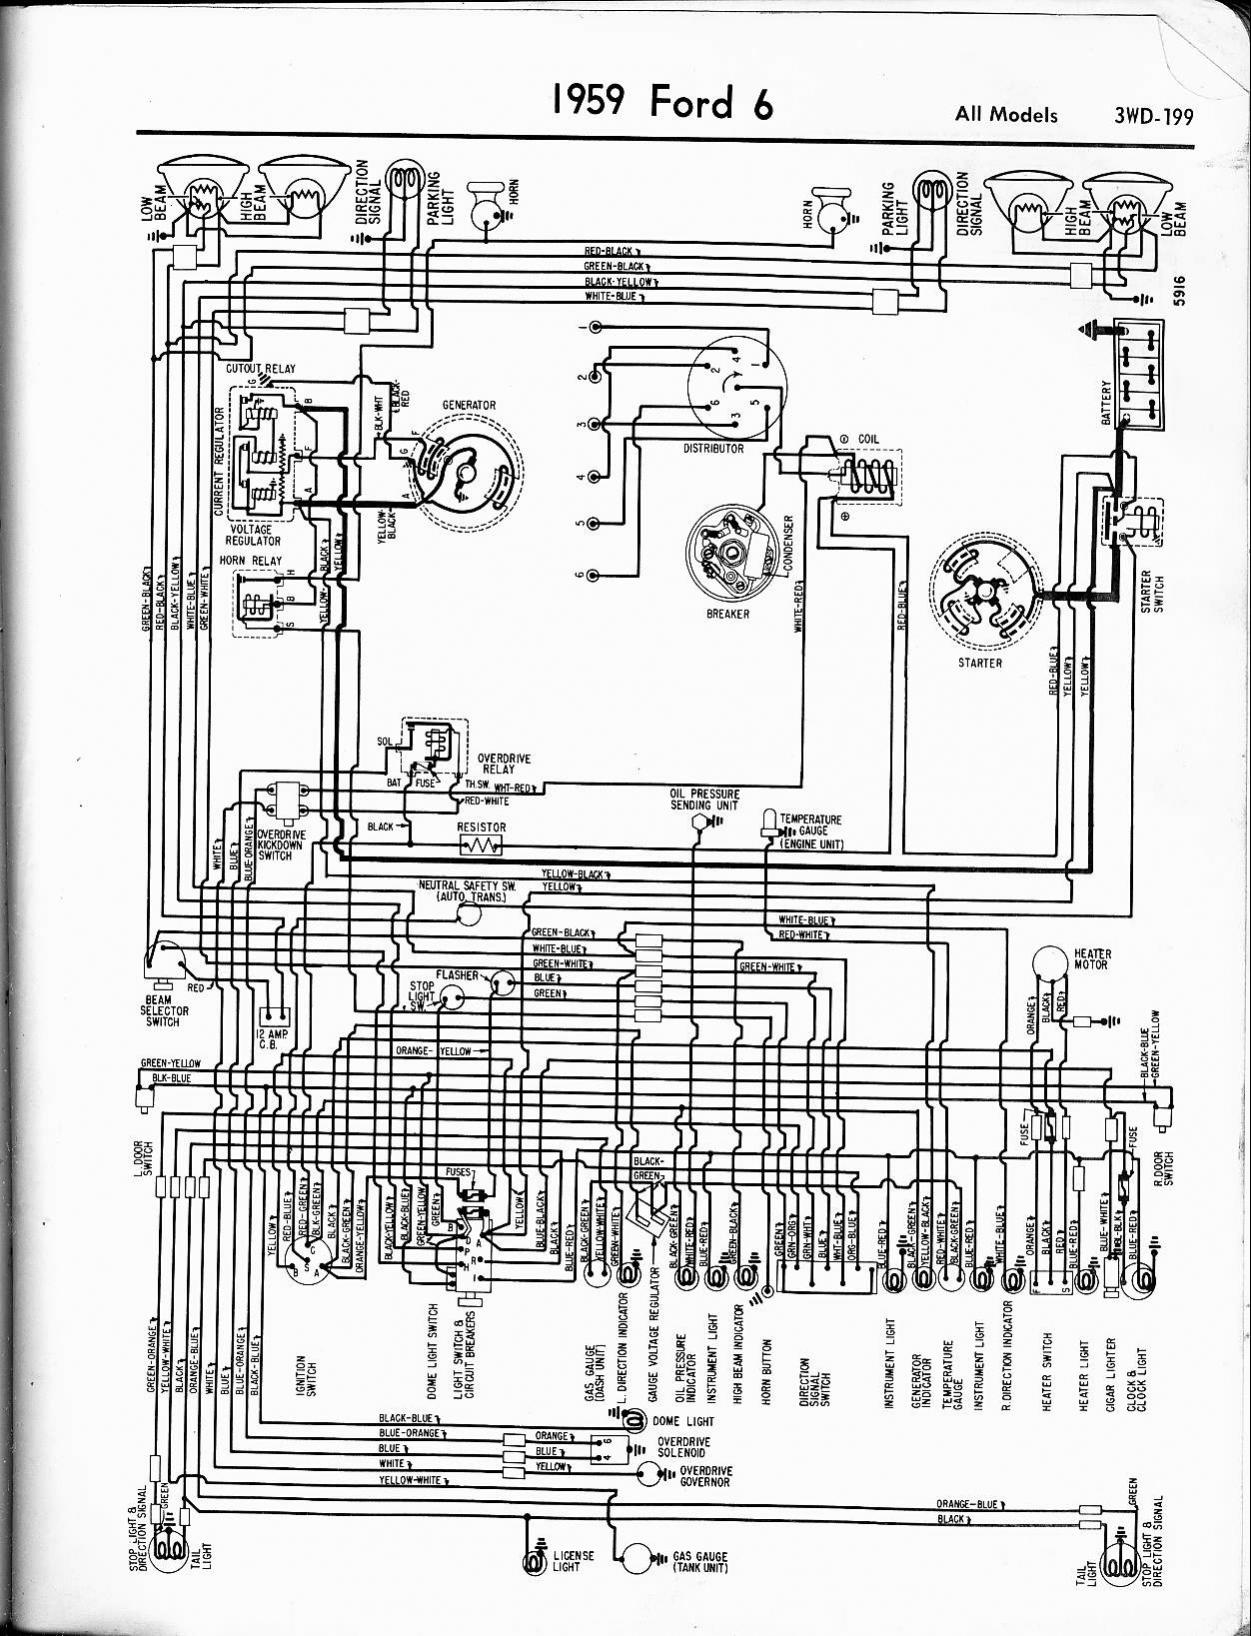 wiring diagram internal regulator on 1956 ford truck wiring harness 1970 Mercury Cougar Wiring Diagram